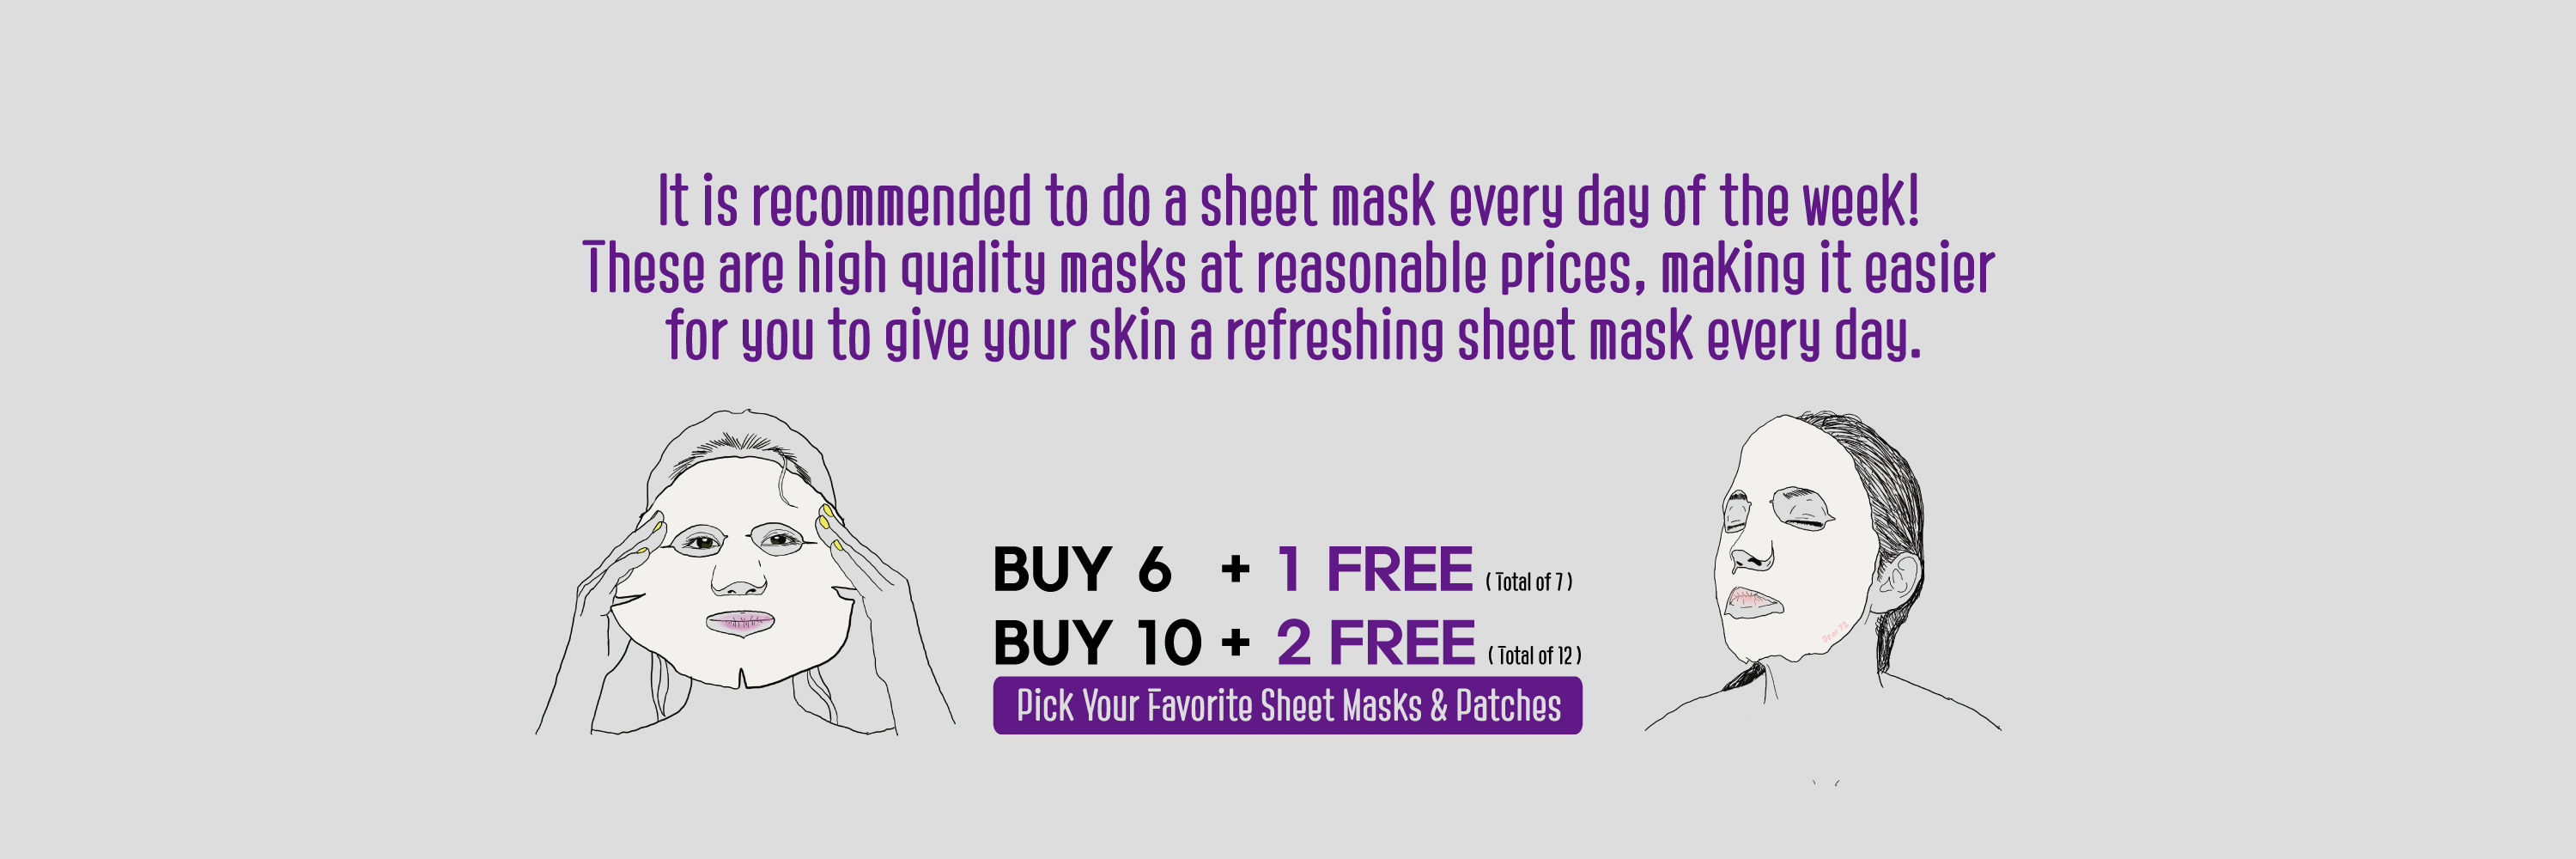 every-day-mask.jpg